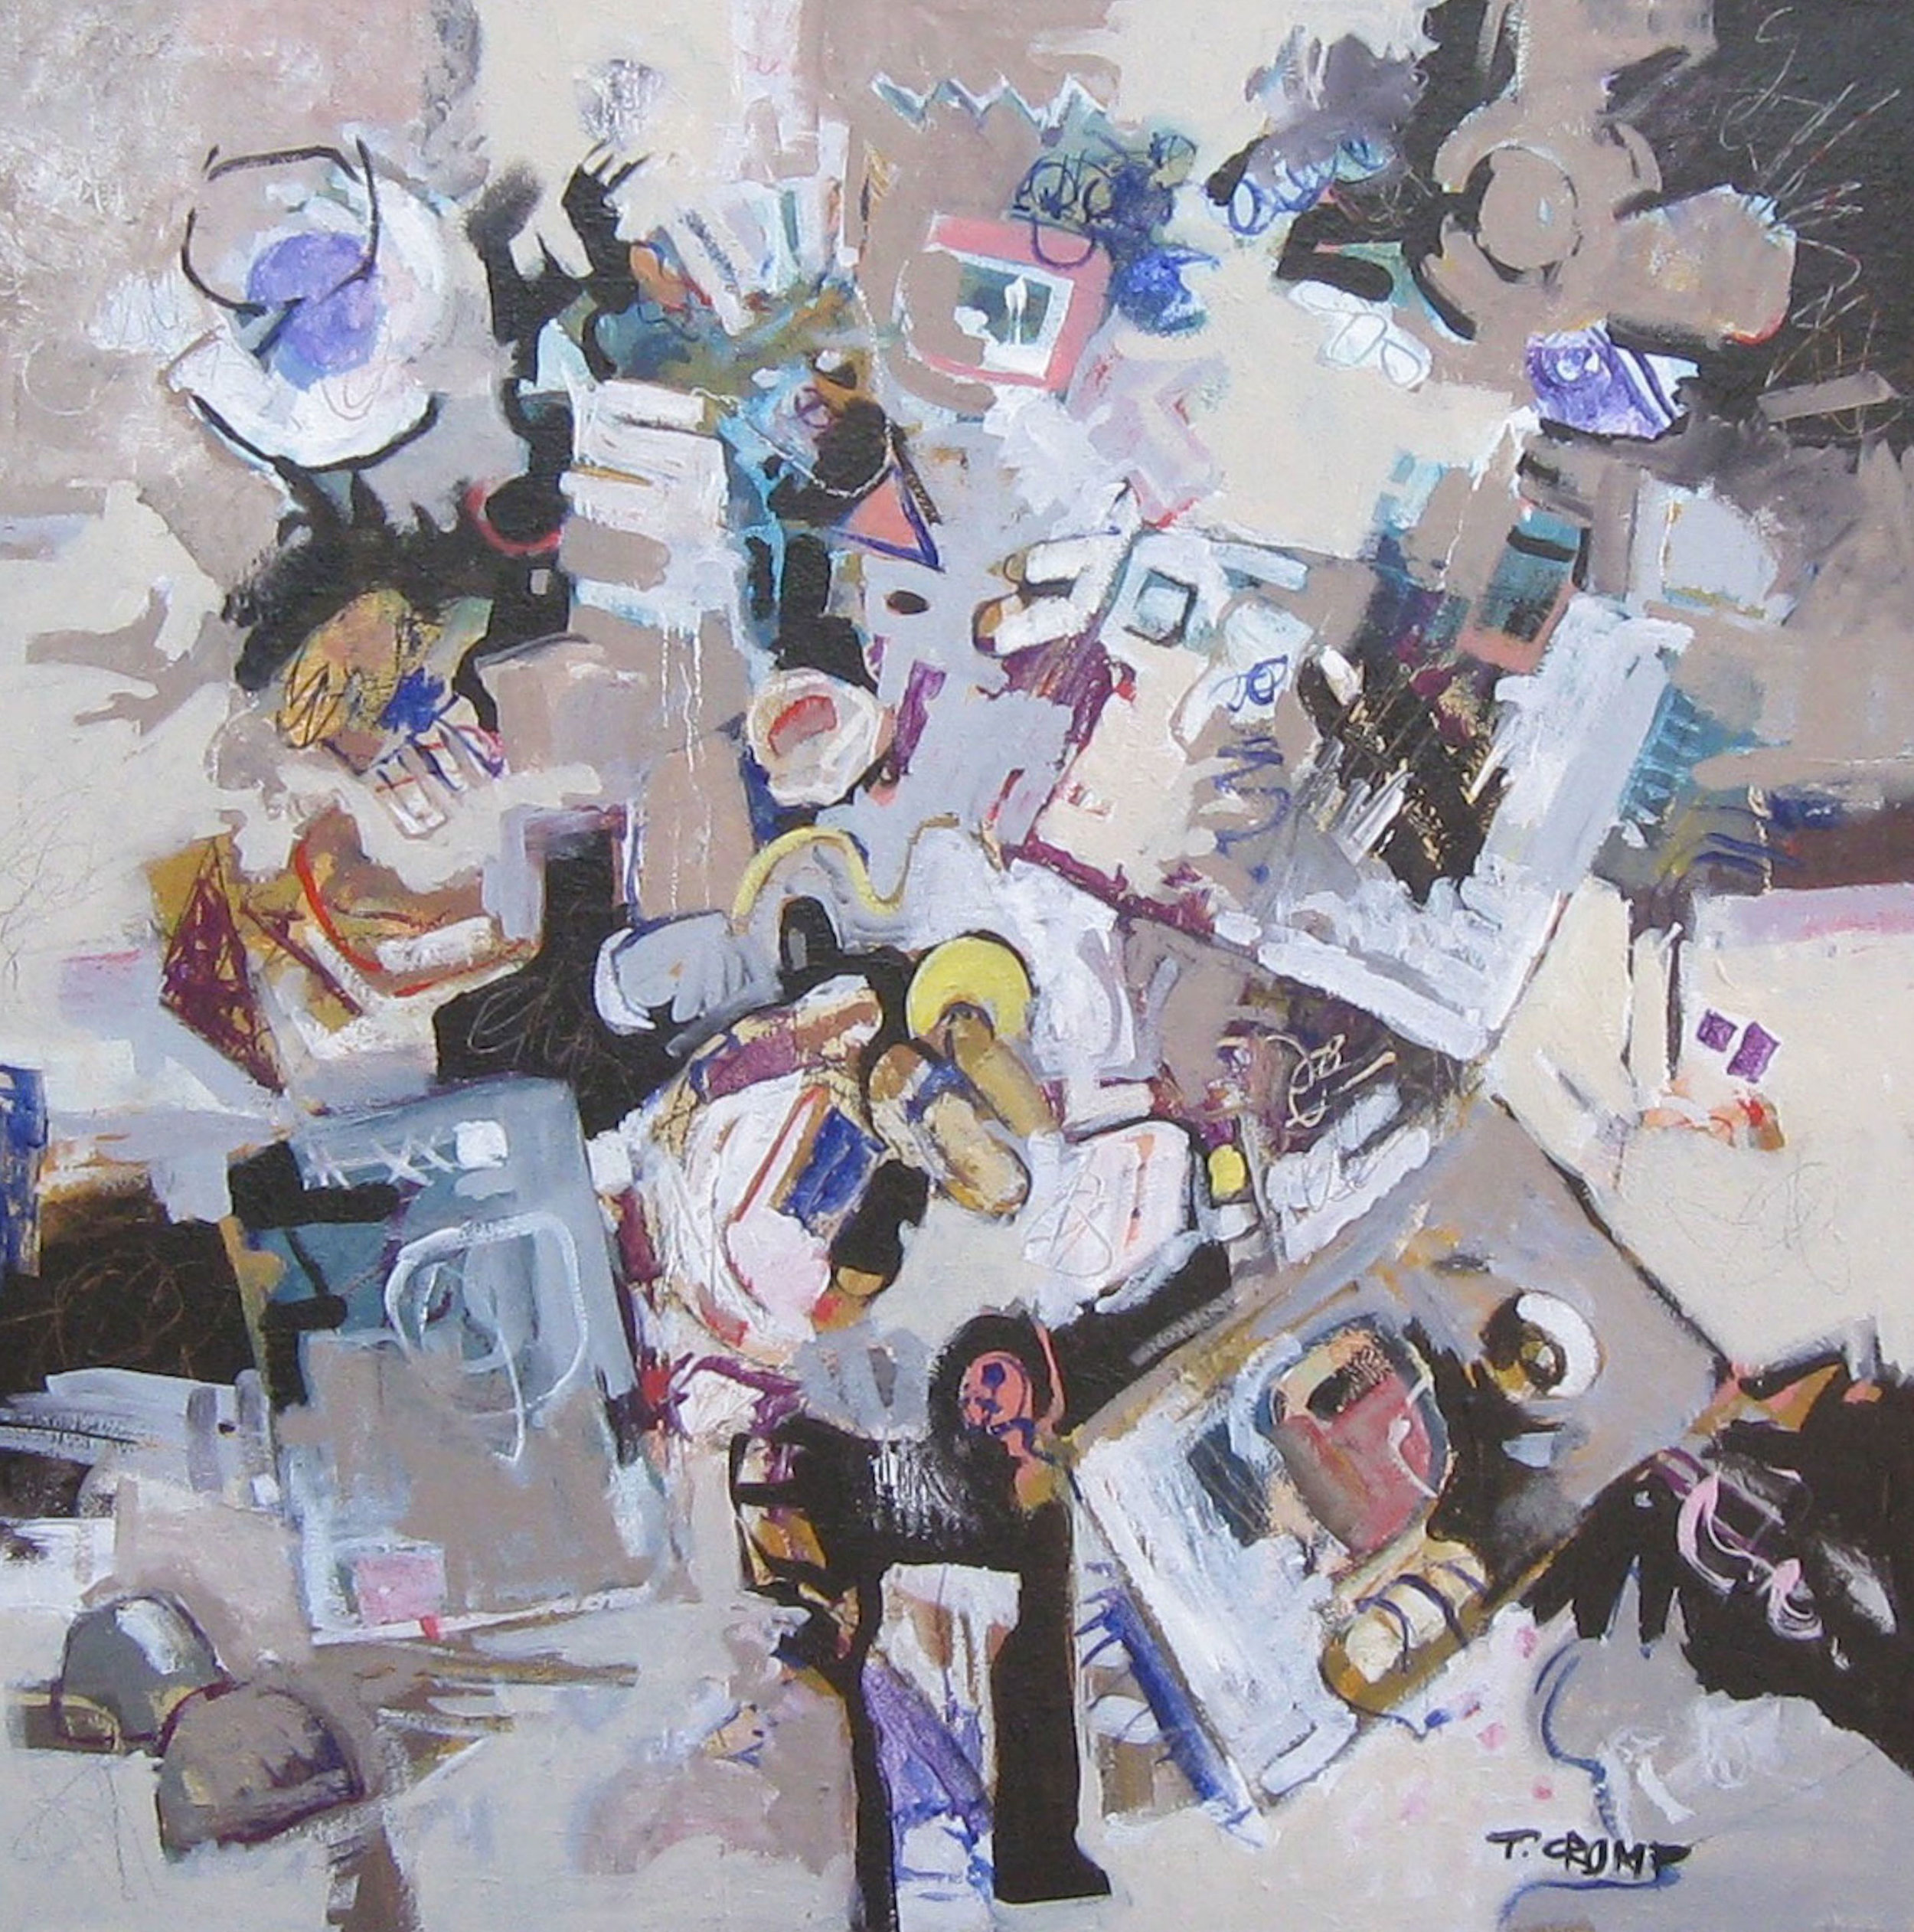 """Unboxing the New Toy   36"""" x 36"""" oil on canvas  by T. Crump"""